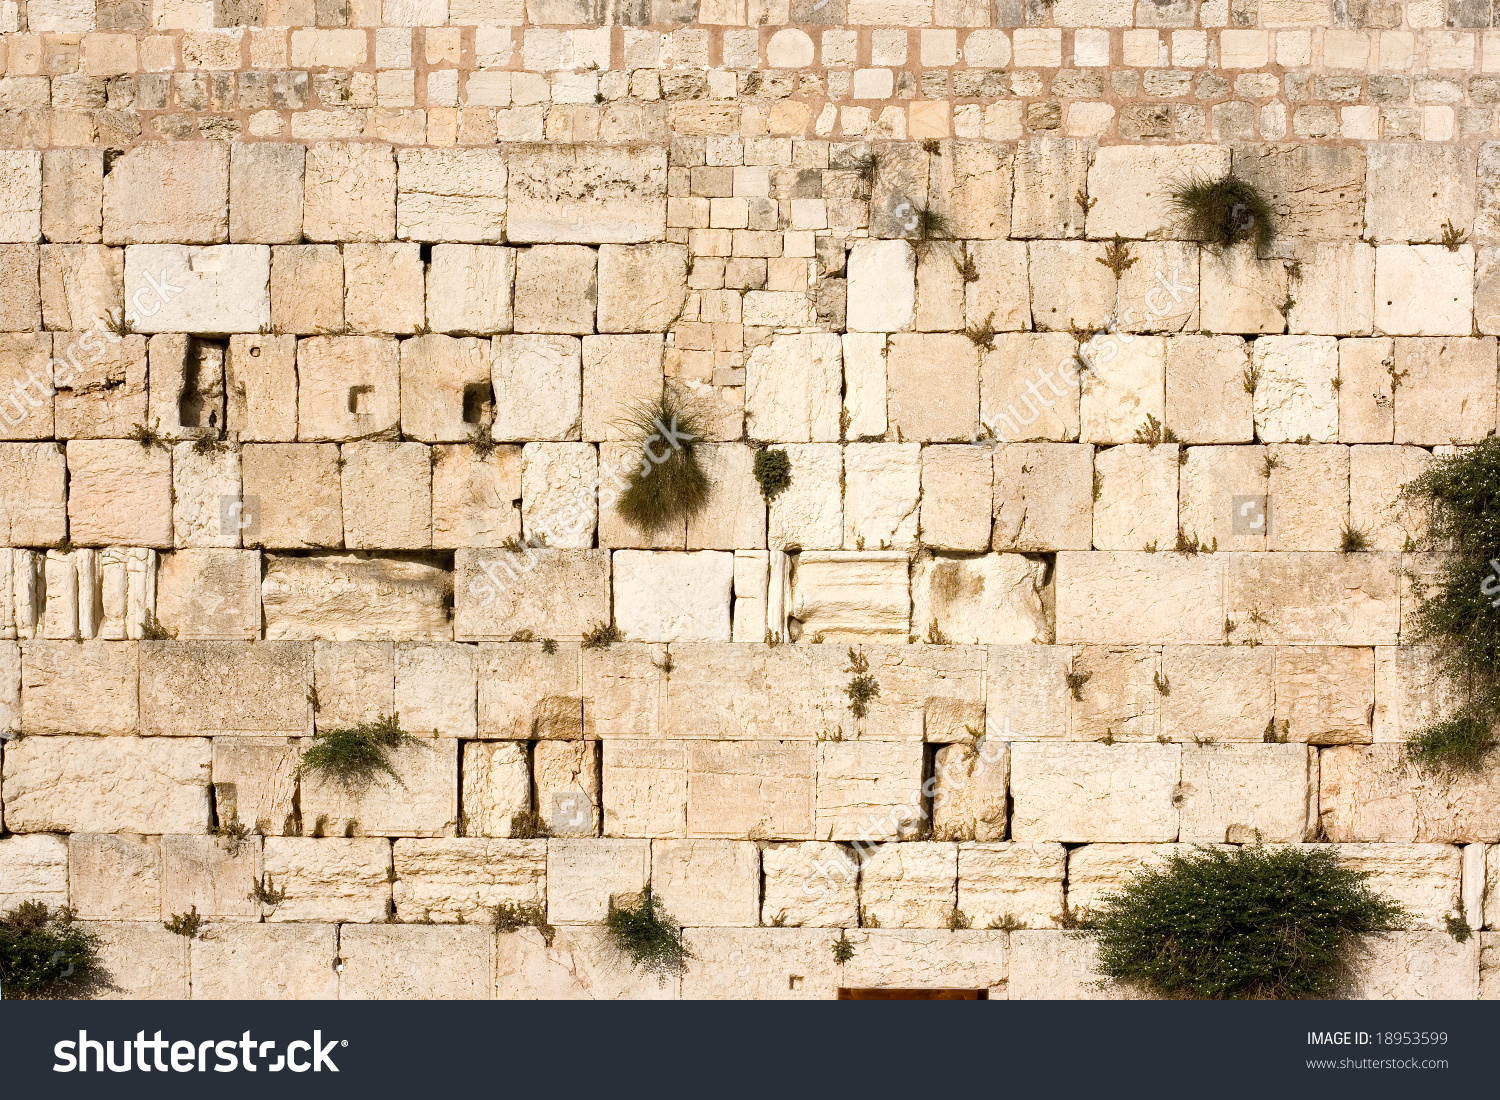 Wailing Wall Kotel Western Wall Useful Stock Photo 18953599.